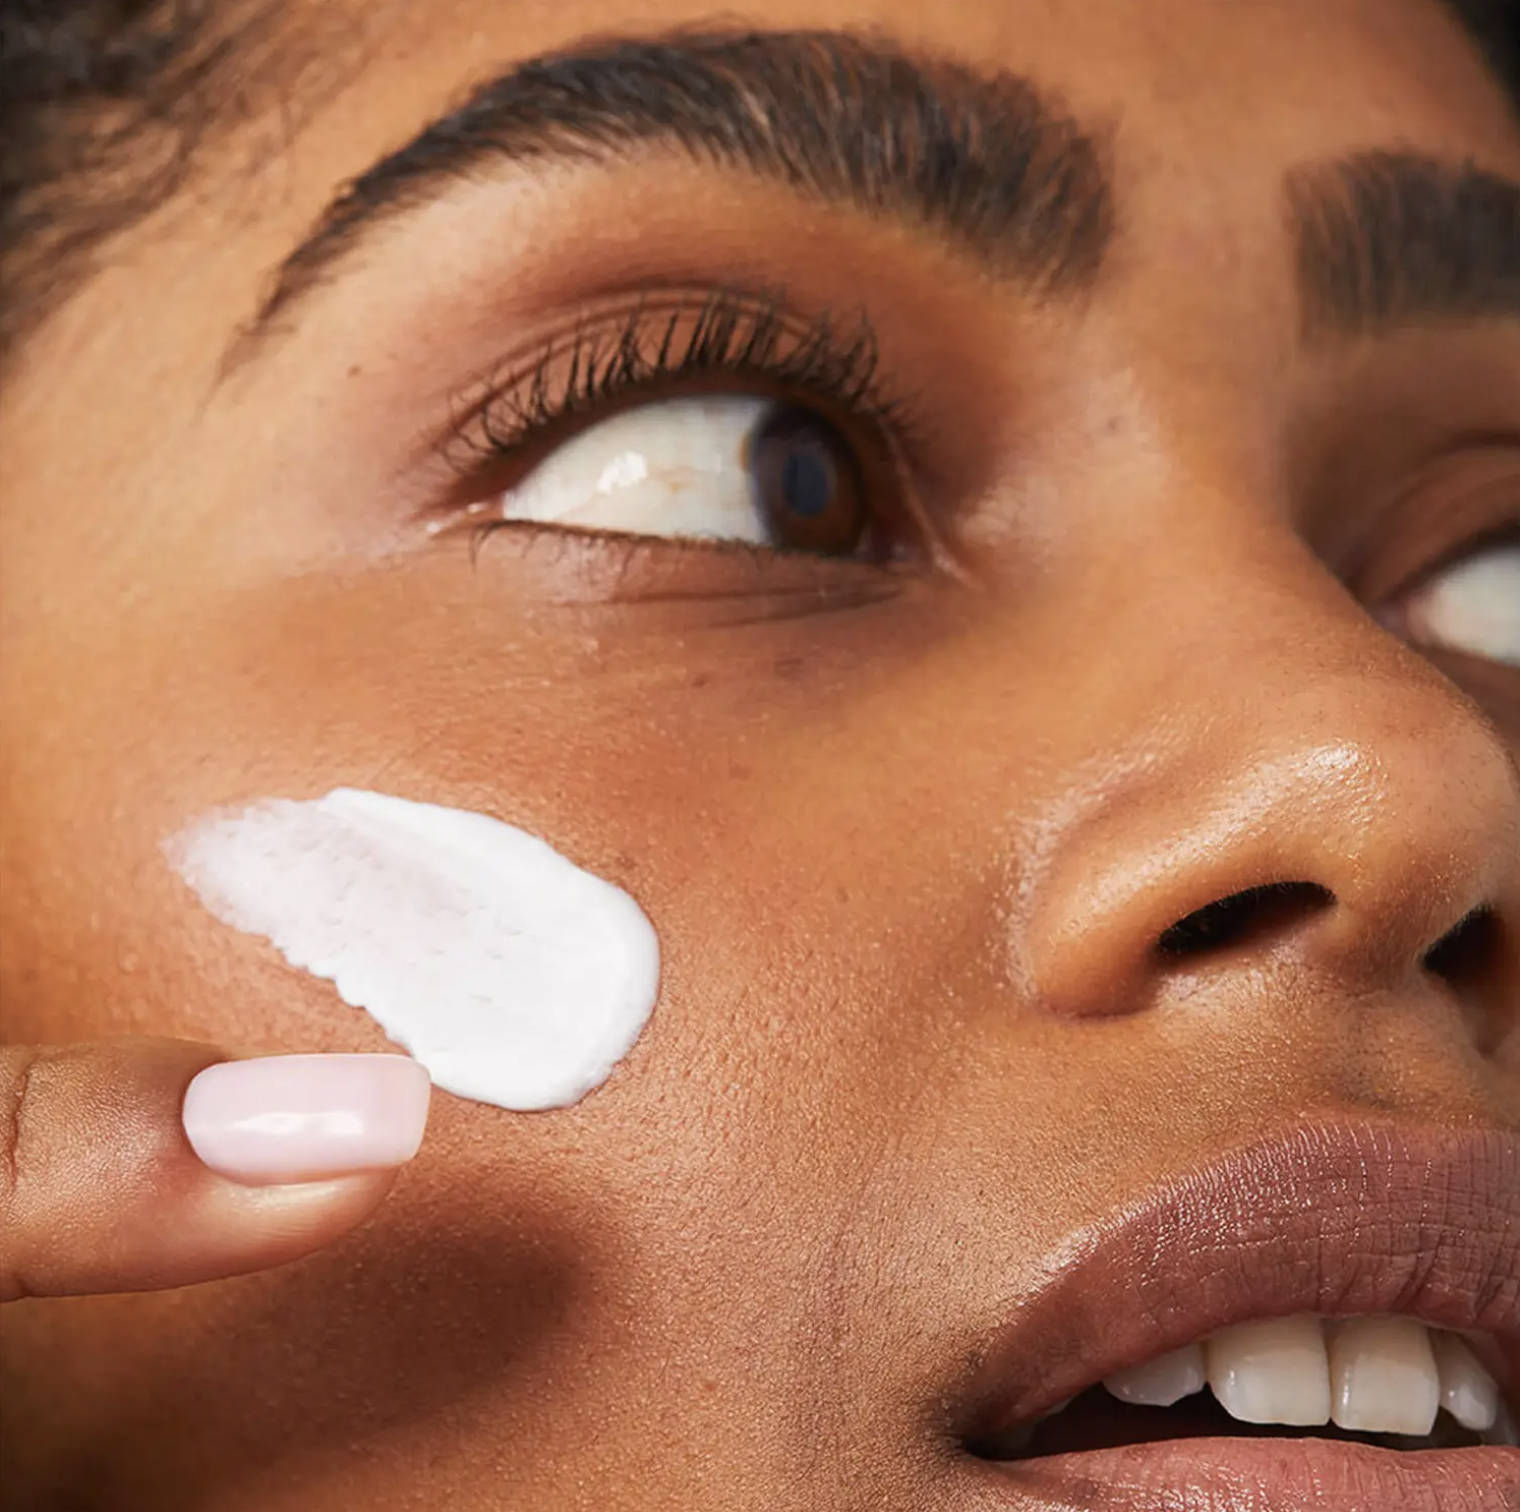 A person with a swipe of cream on their face